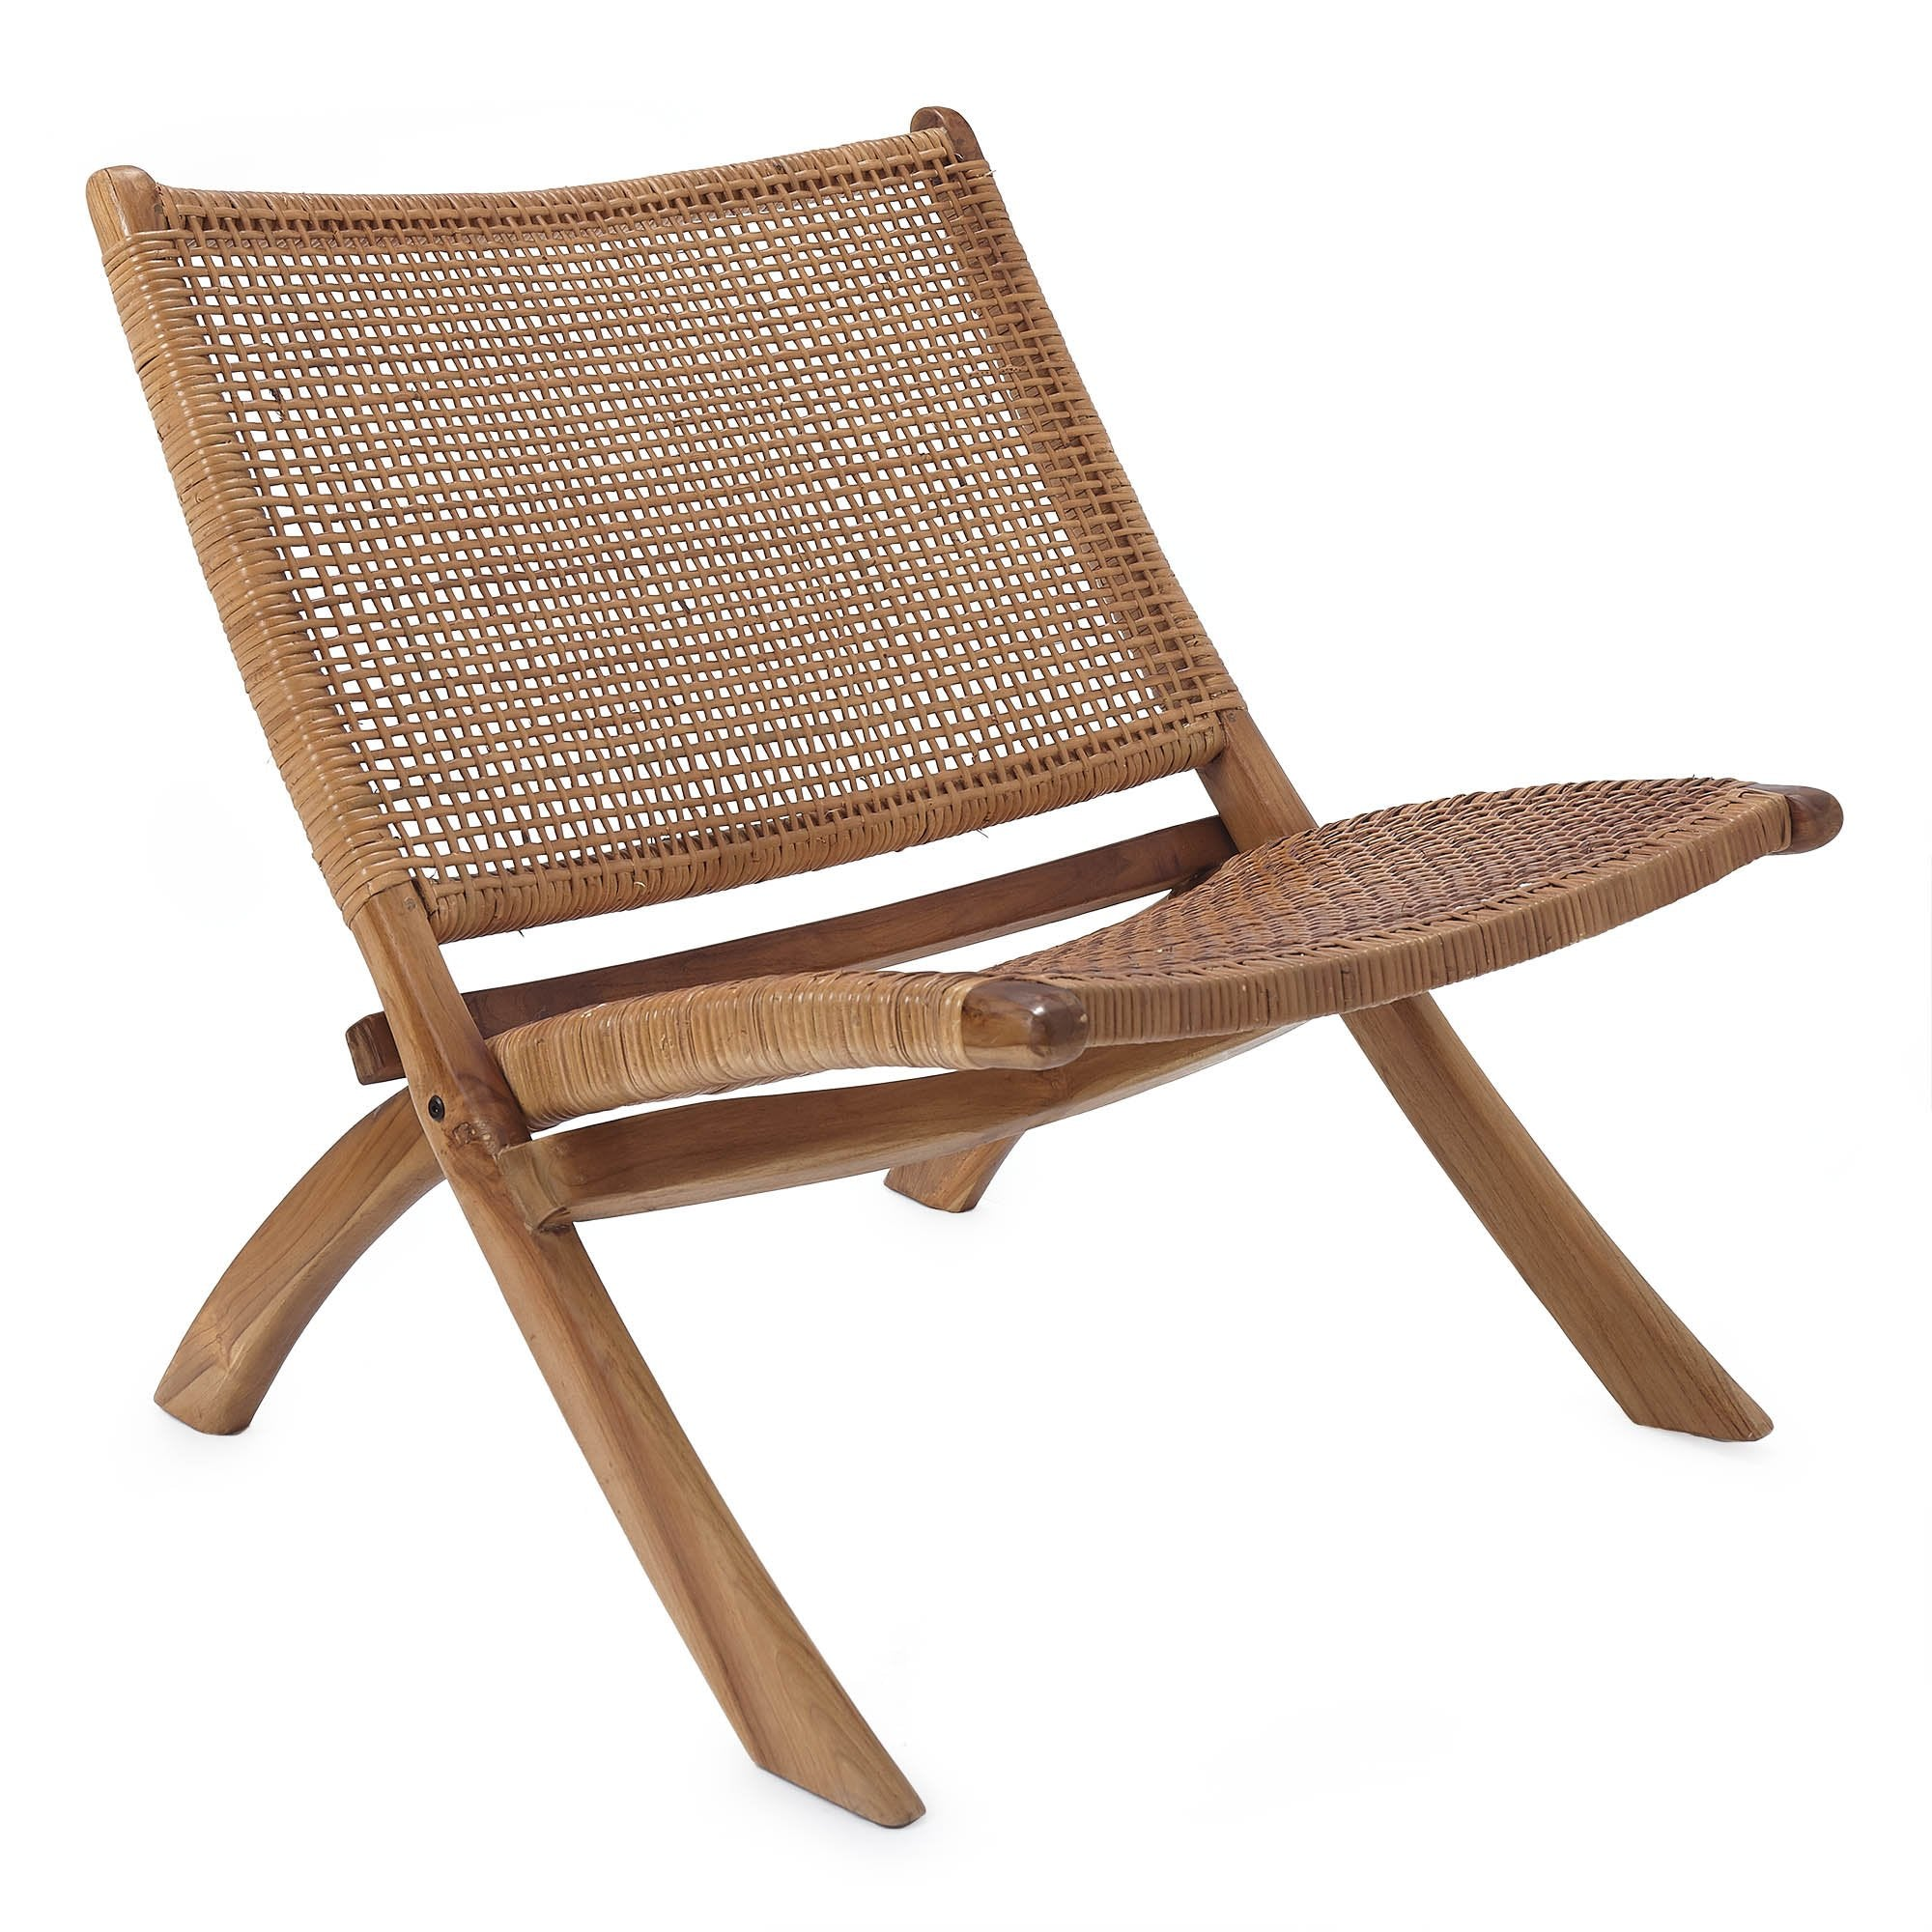 Bakaru chair, natural, 100% rattan & 100% teak wood